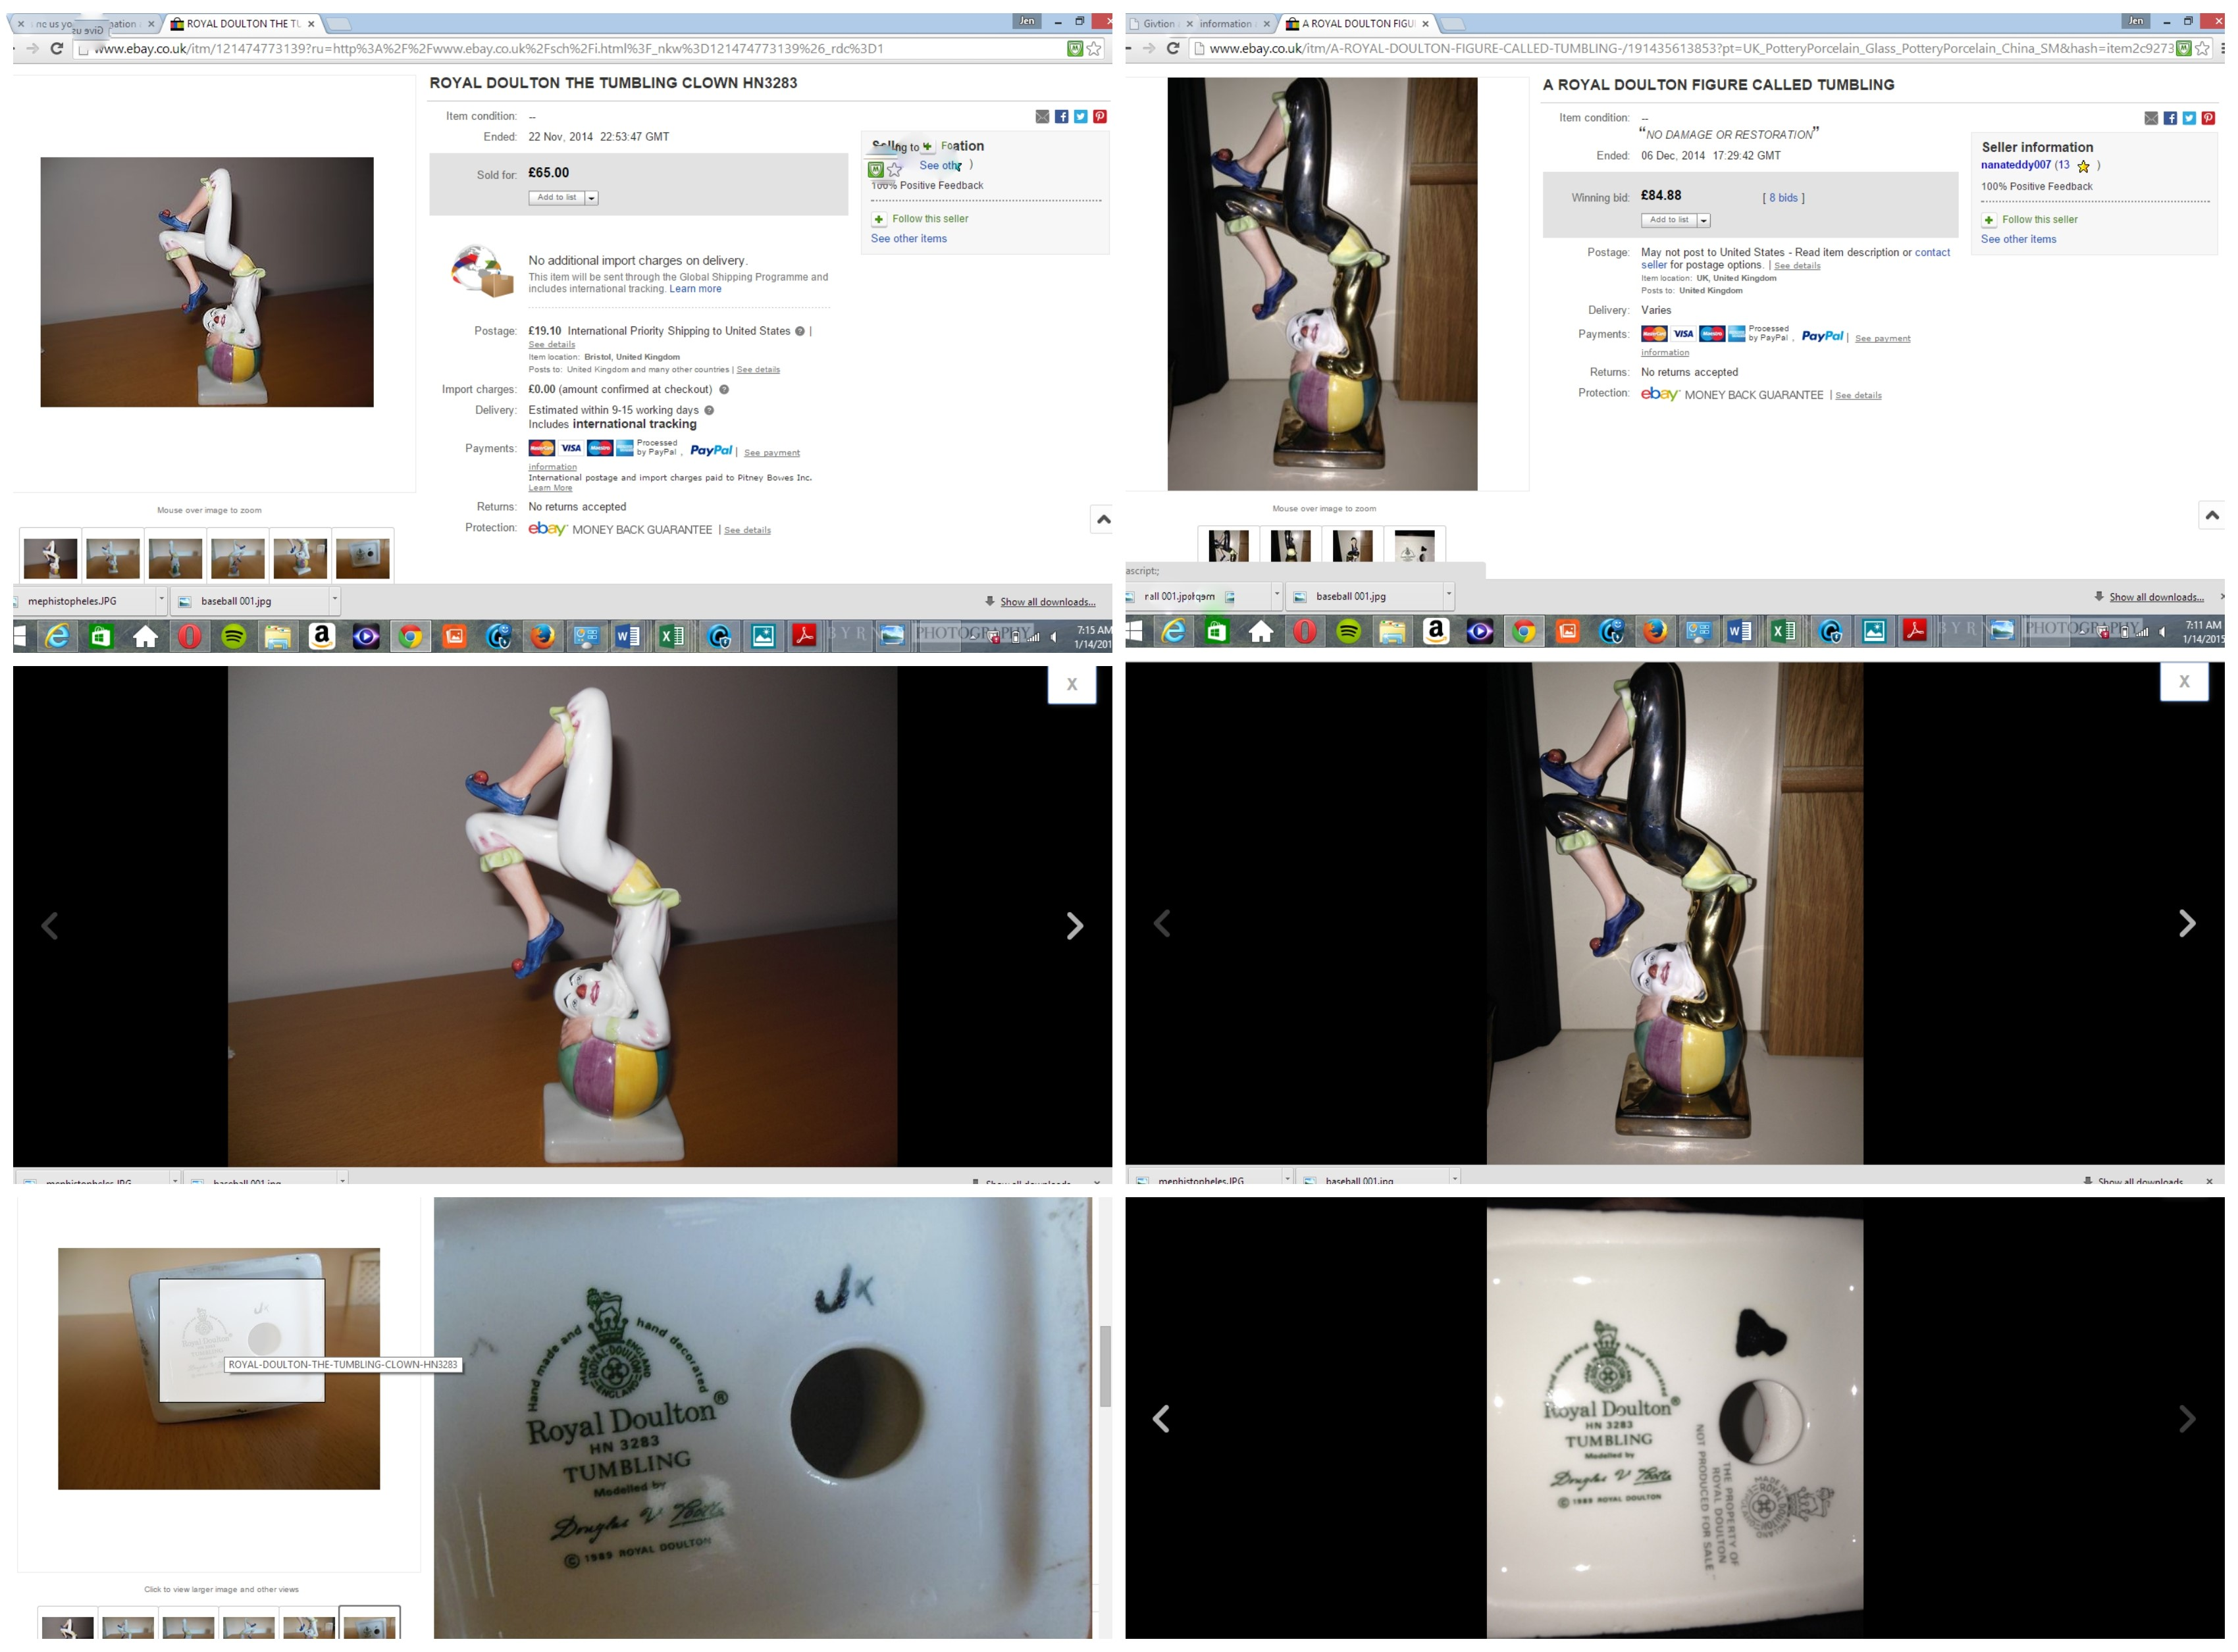 Fakes Sold On eBay-With Pictures | Stop Royal Doulton Fakes